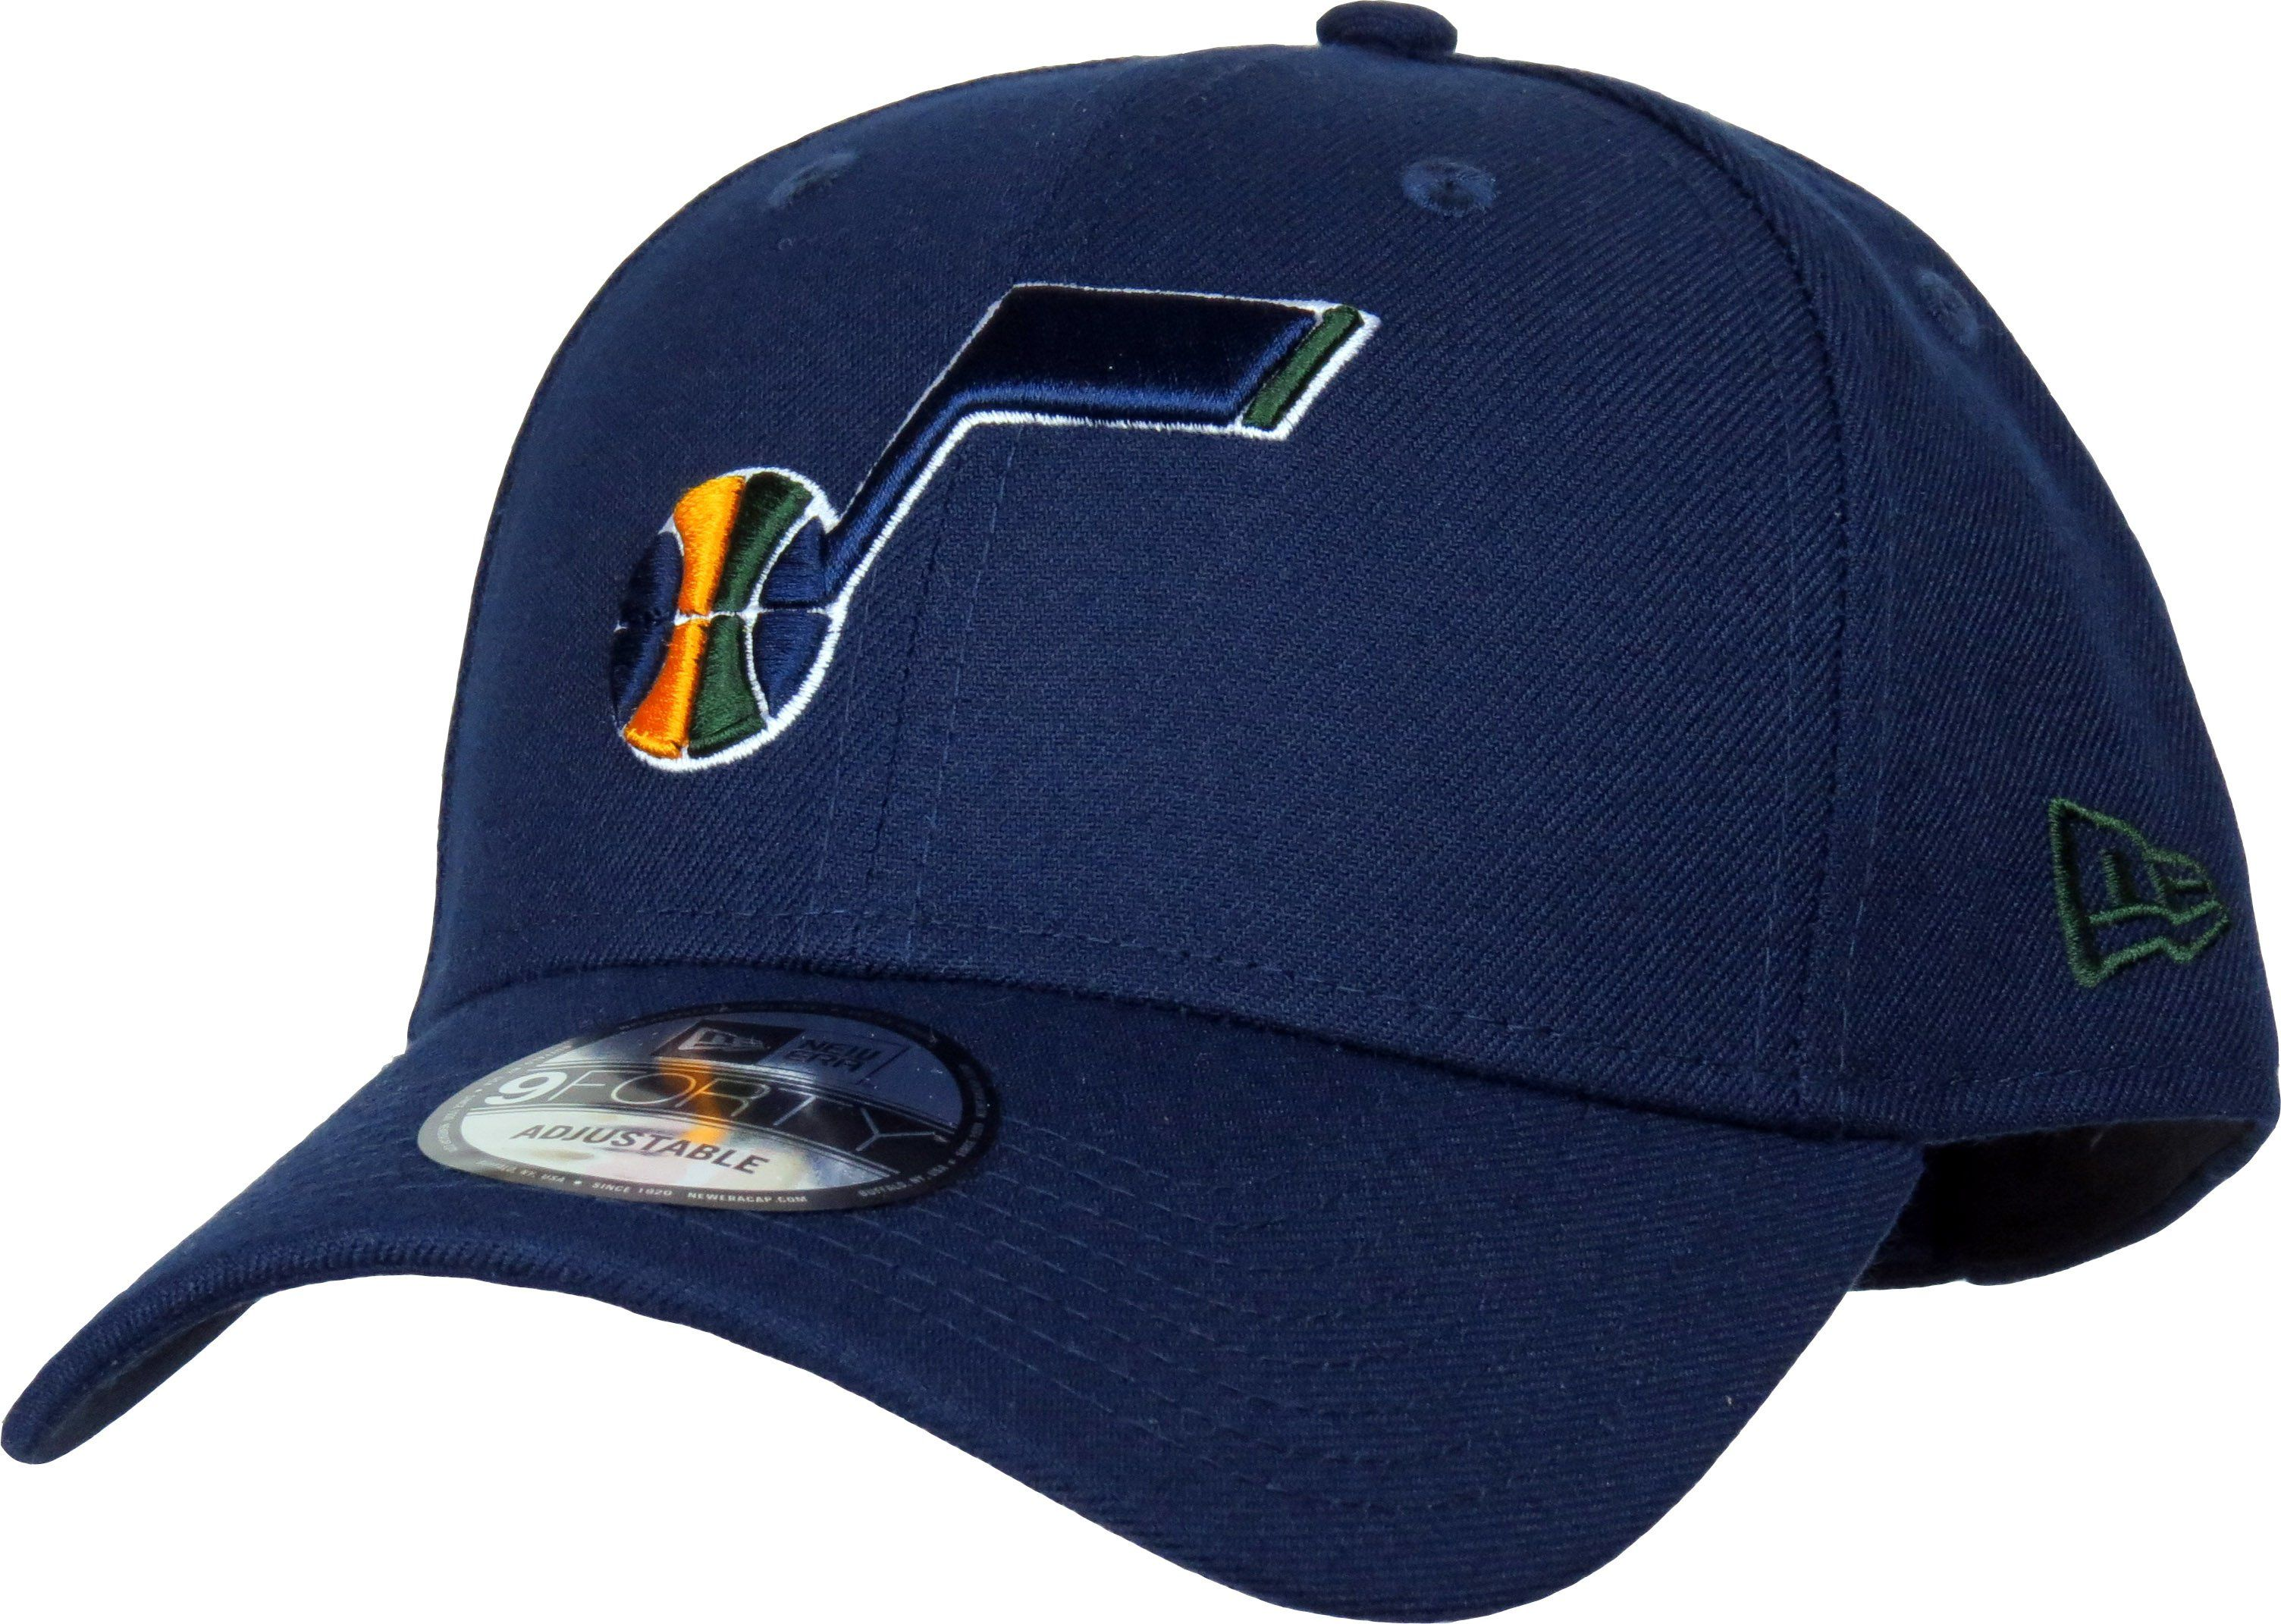 newest da103 4bf9a New Era 9Forty NBA The League Adjustable Team Cap. Navy Blue with the Utah  Jazz front logo, the New Era side logo, and the Jazz rear strap logo.